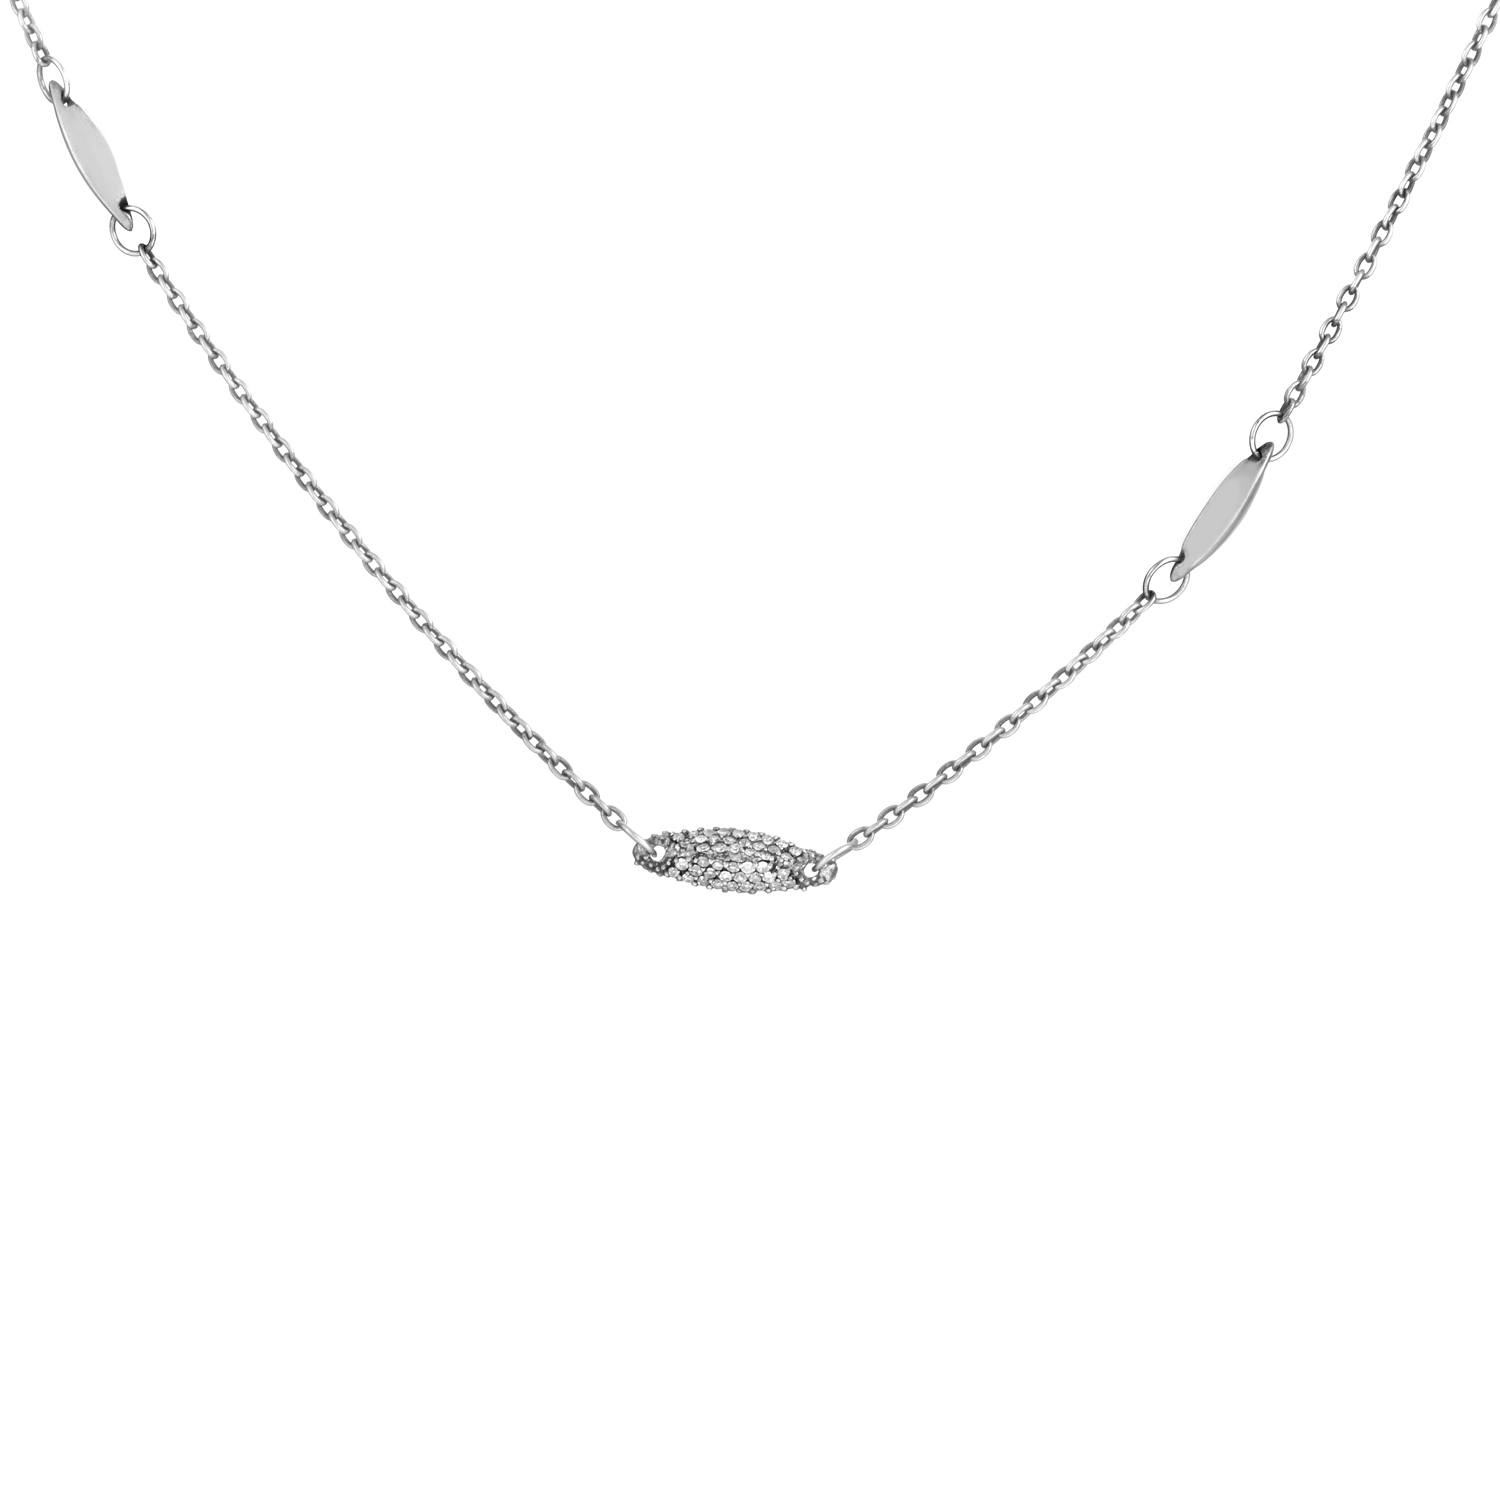 Marquis Women's Sterling Silver Grey Diamond Necklace FN41N037